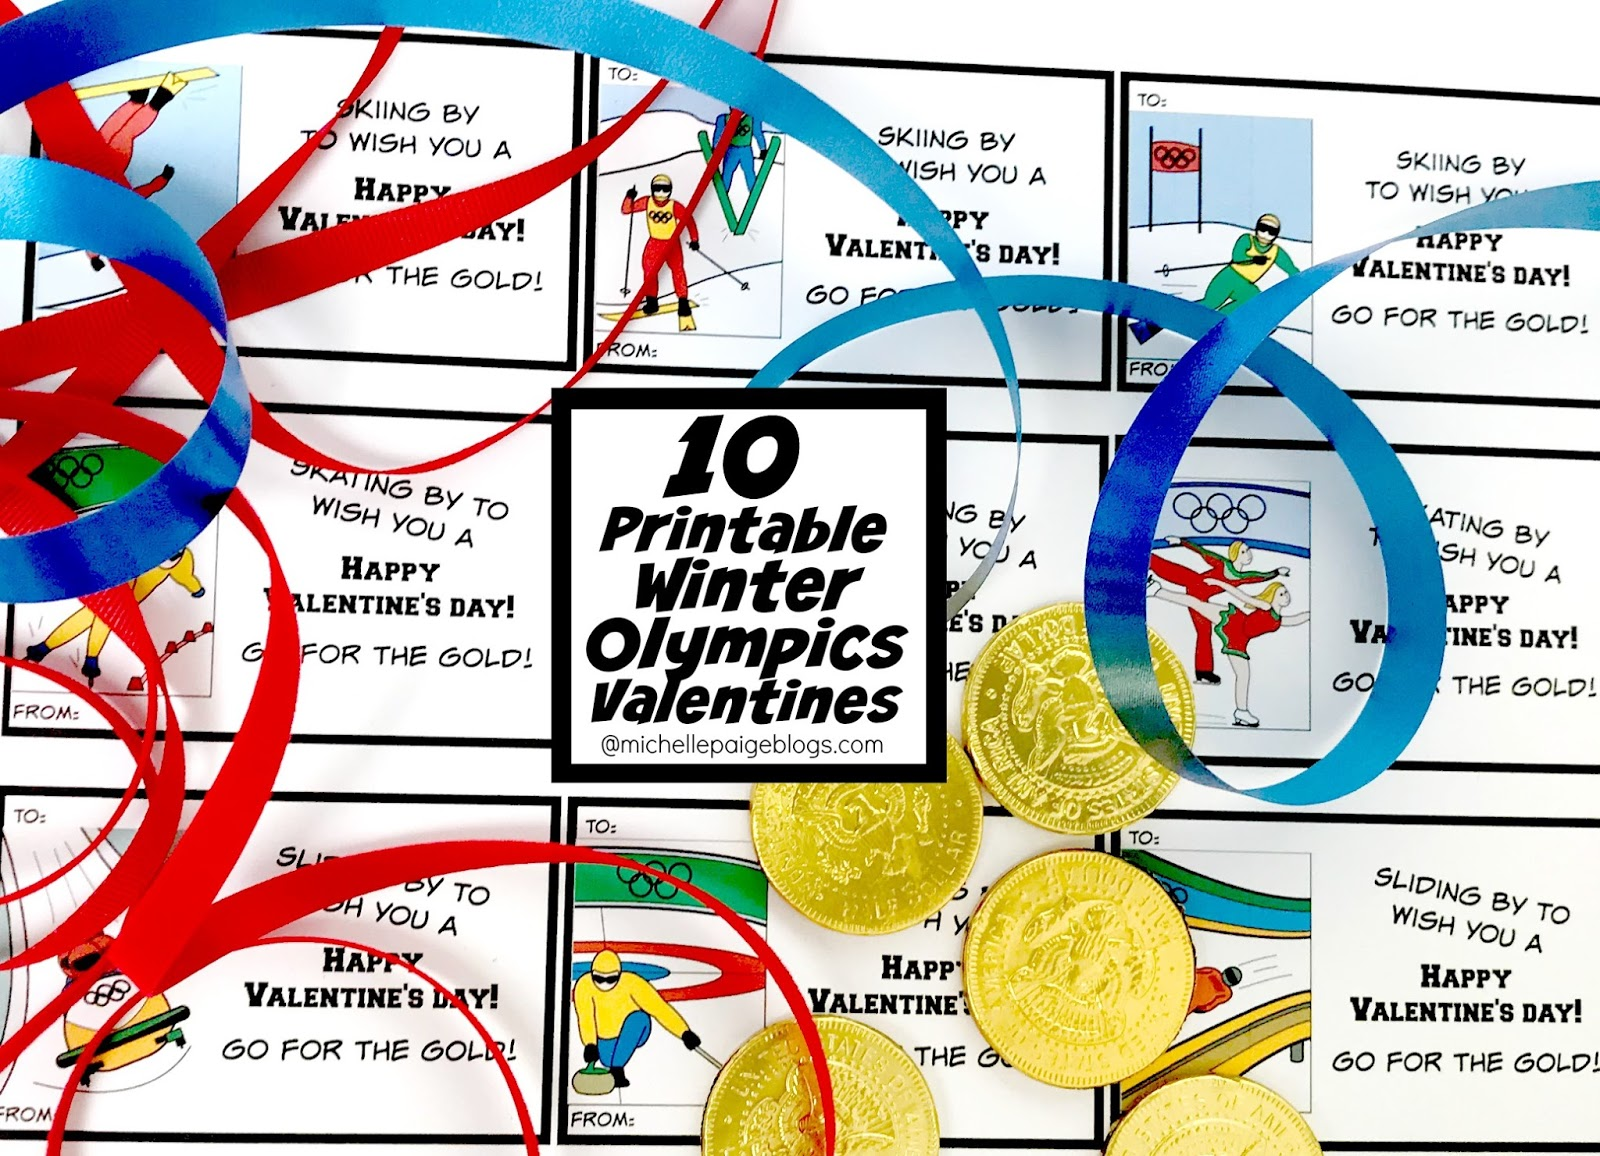 Michelle Paige Blogs Winter Olympics Printable Valentines